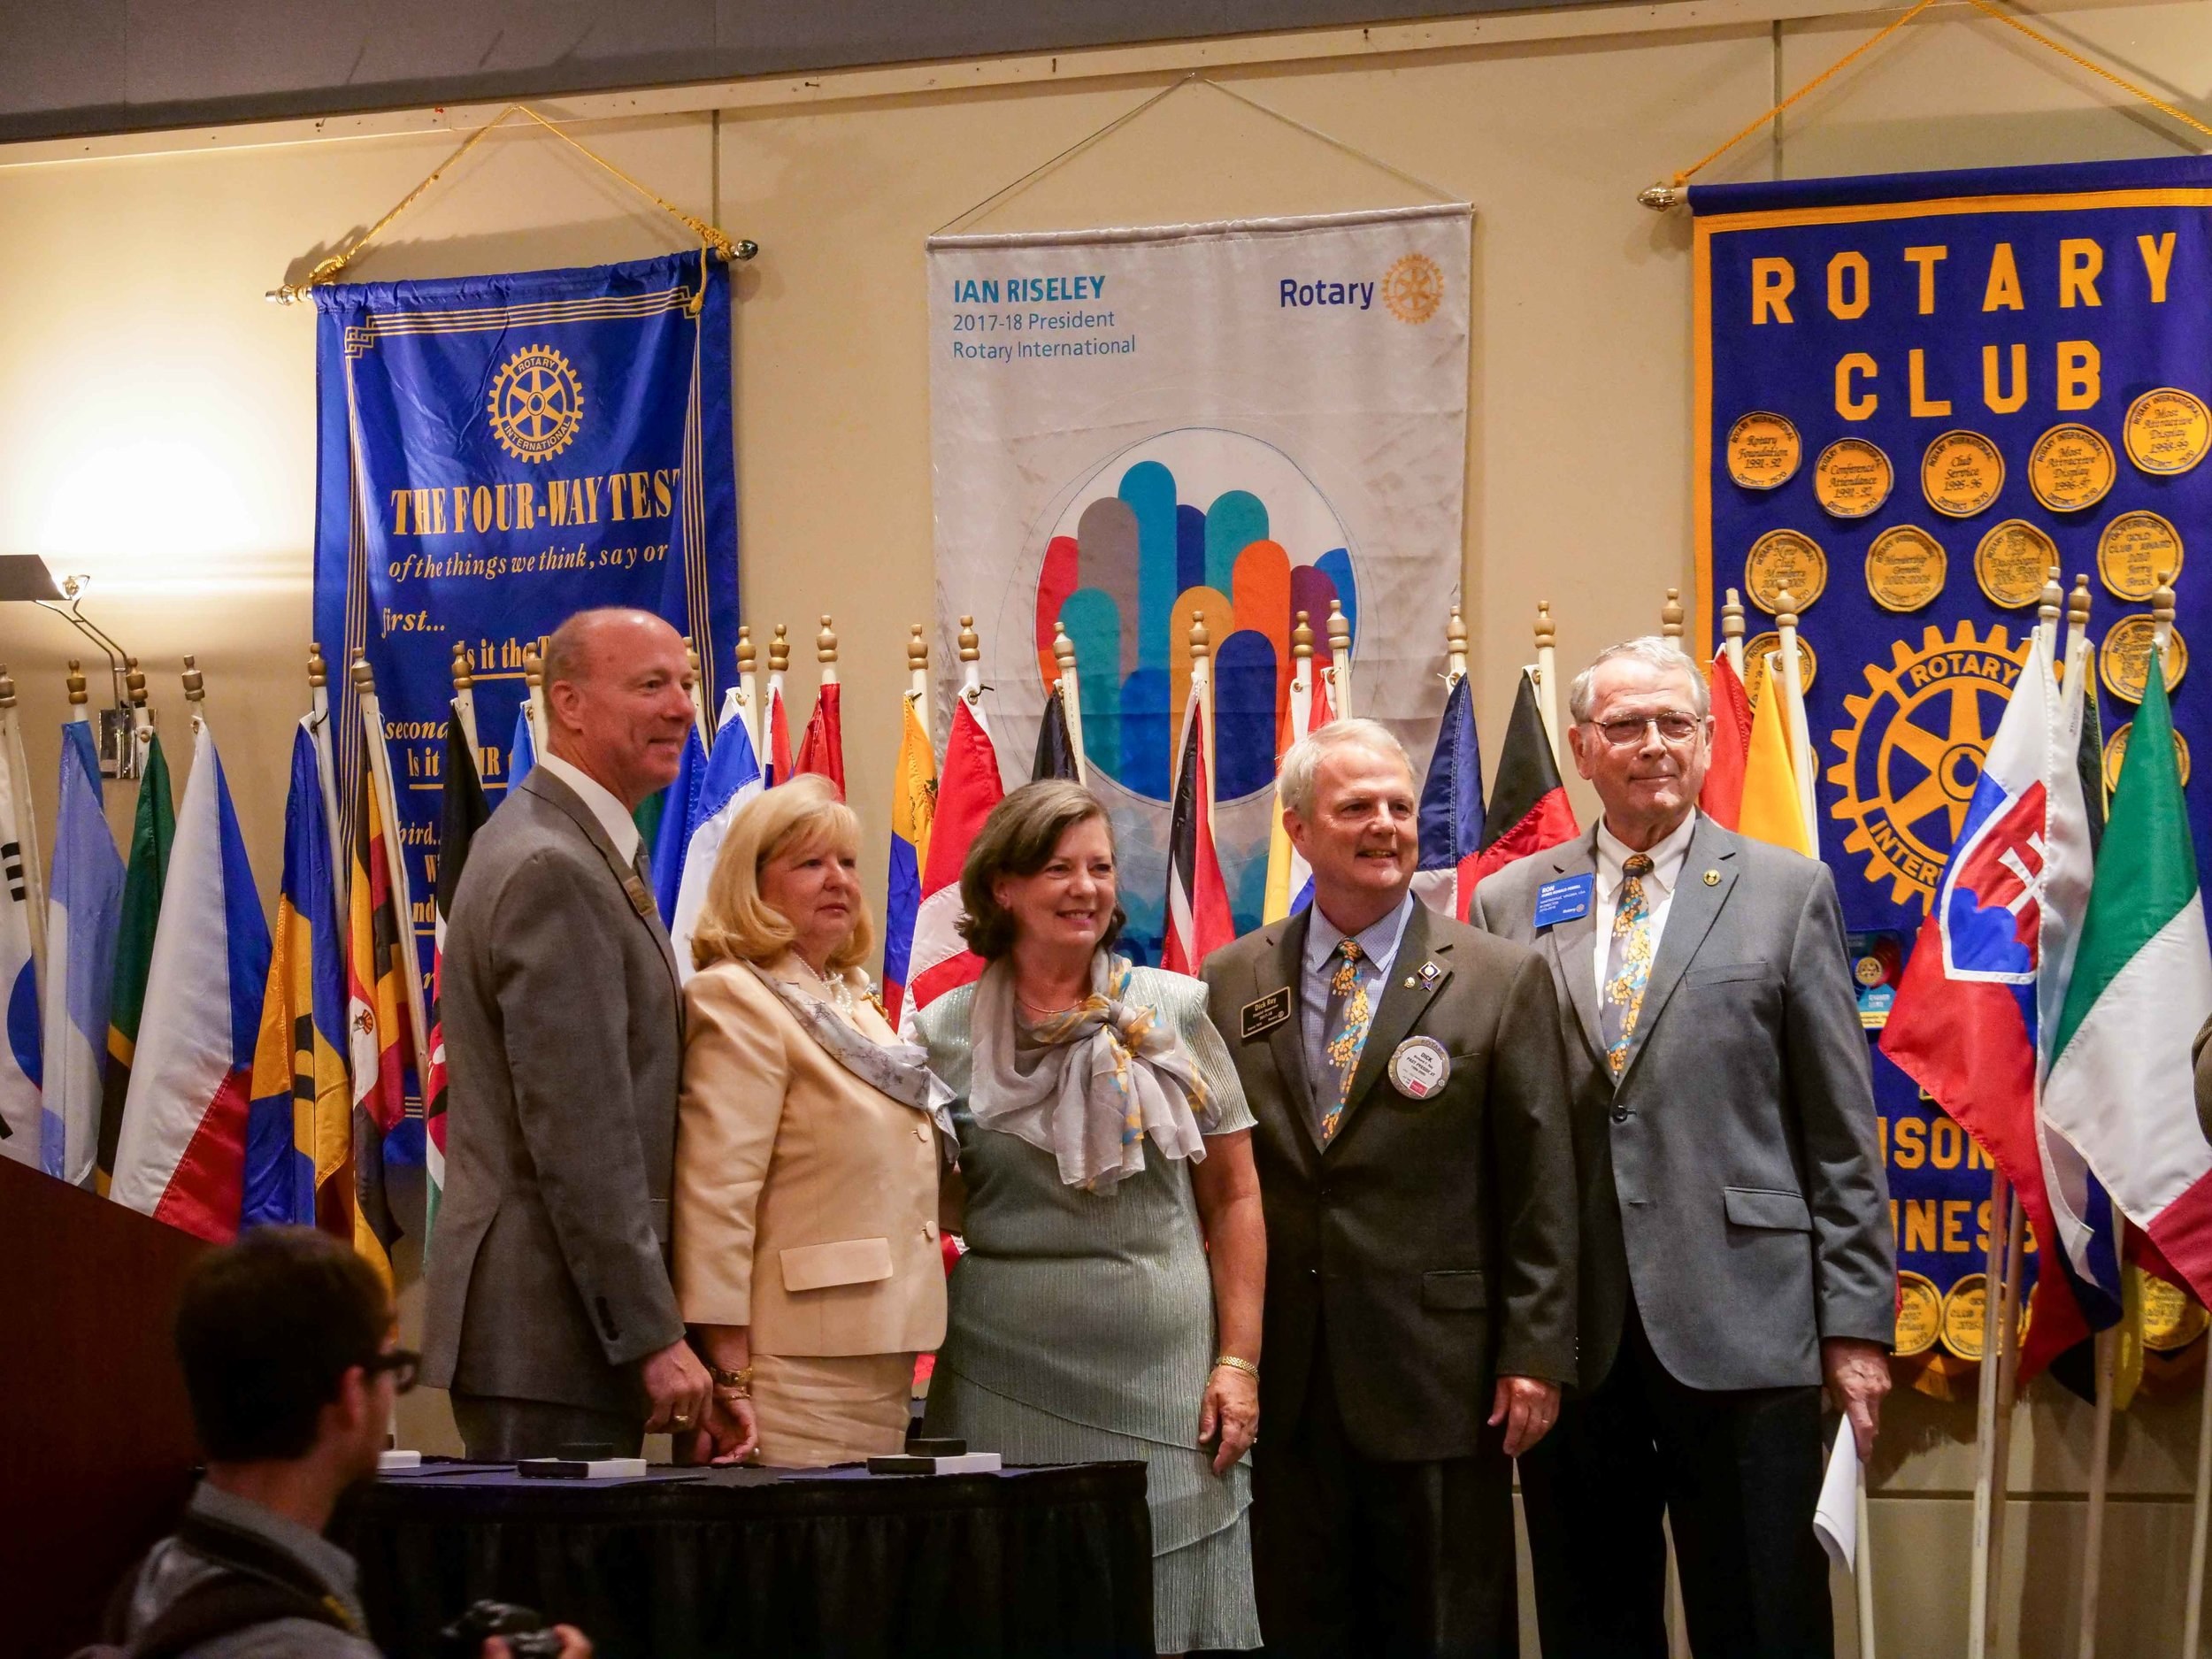 Thank you to LaShonda Delivuk of The Rotary Club of Lynchburg Morning for these GREAT pictures!